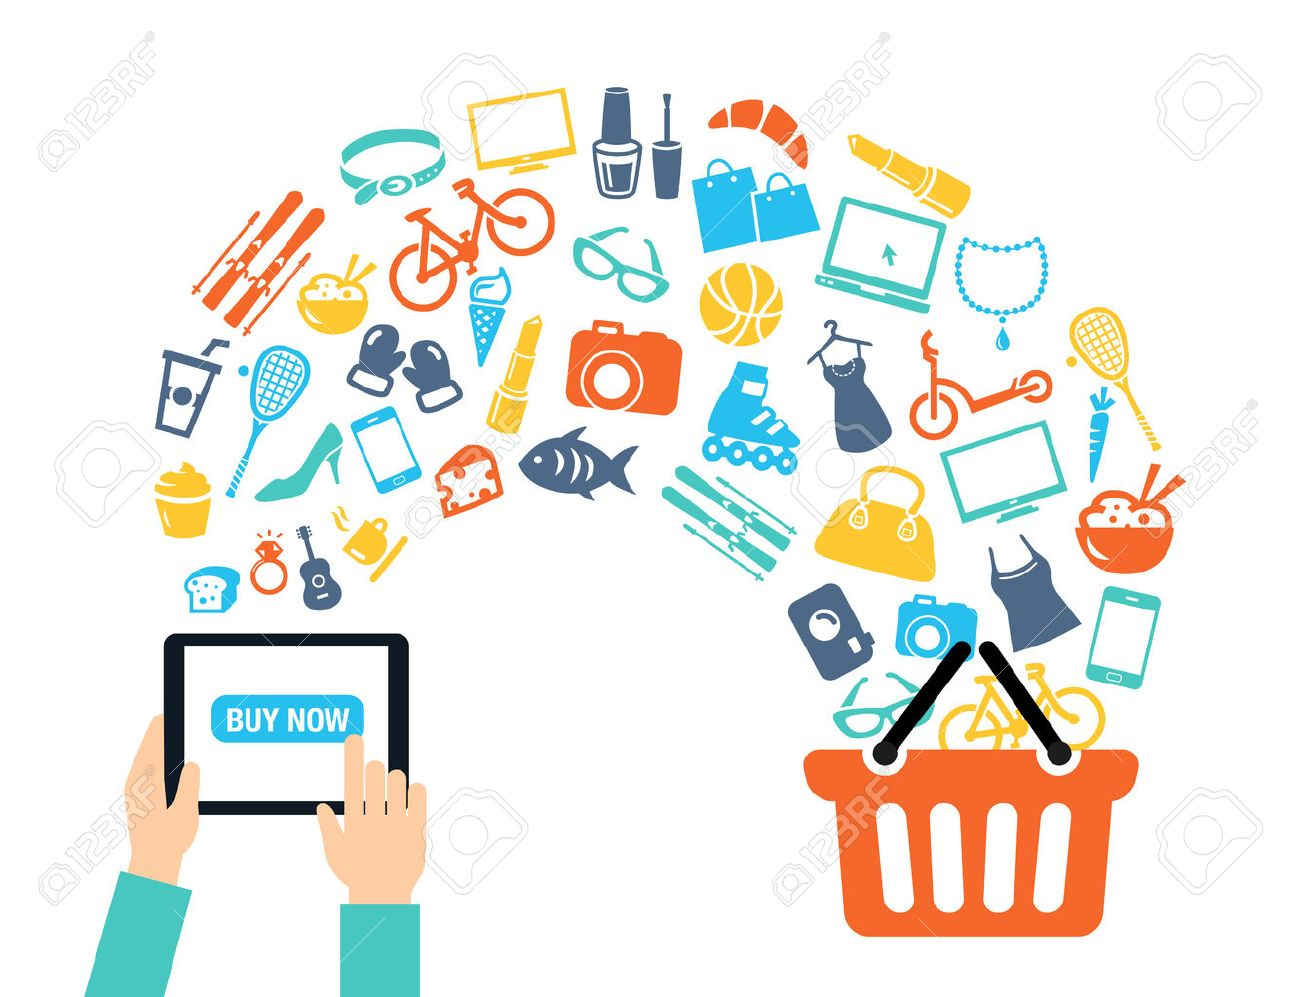 Shopping background concept with icons - shopping online, using a PC, tablet or a smartphone. Can be used to illustrate mobile communication topics or consumerism. - 50453711